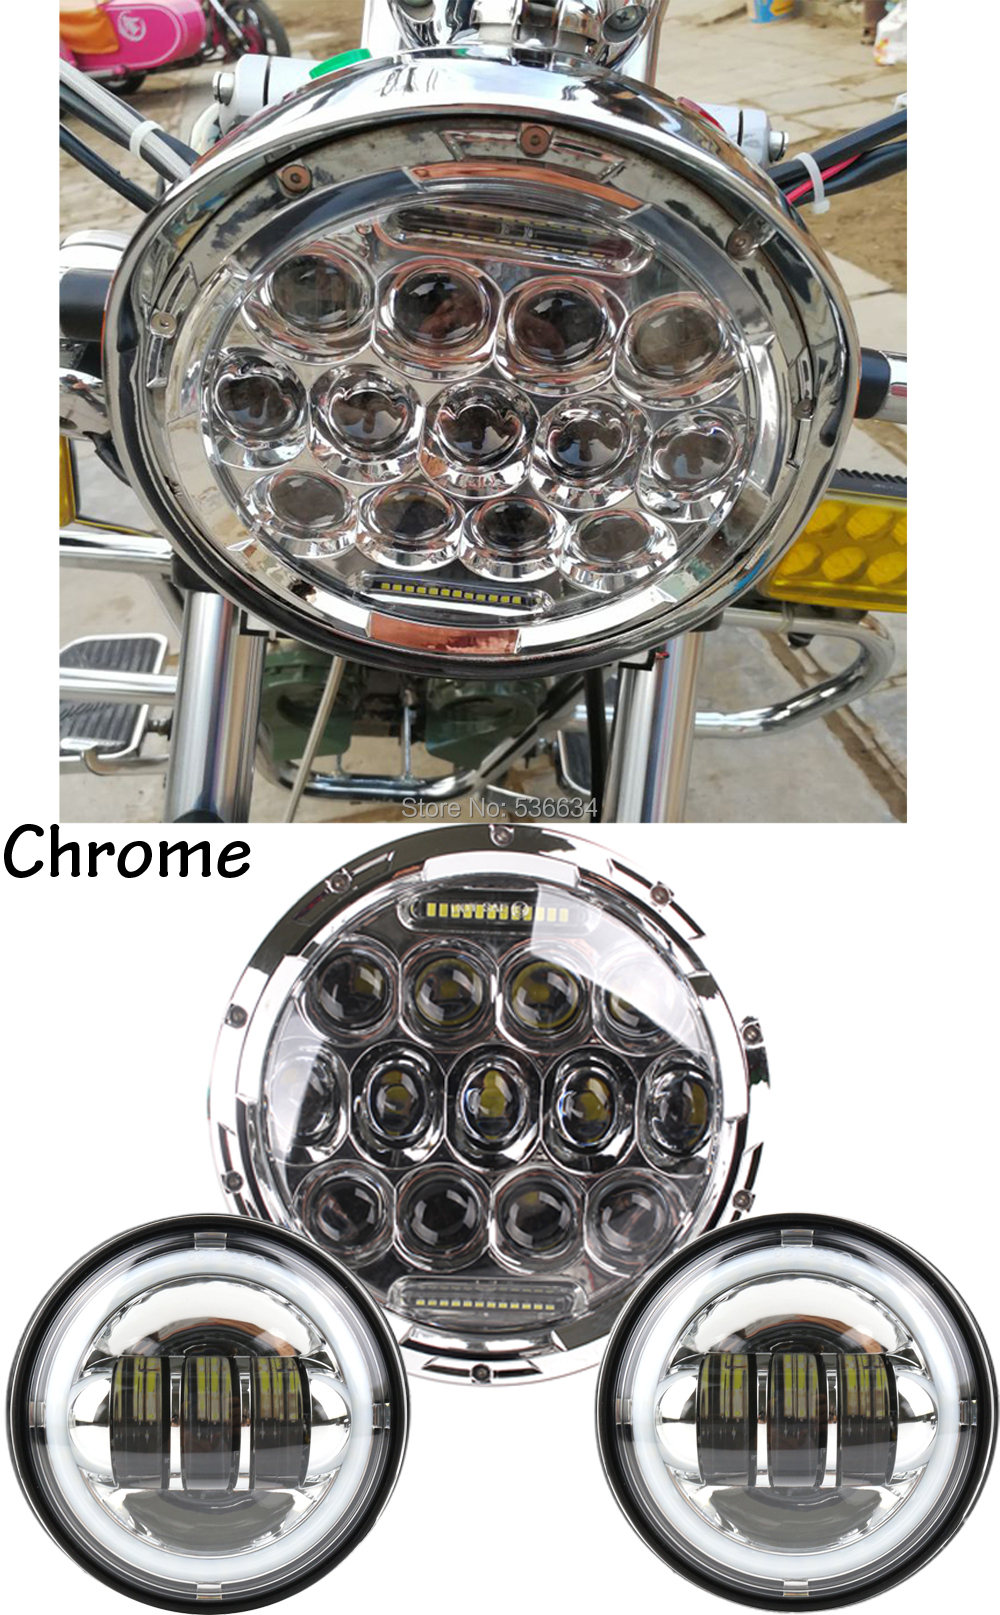 7Inch LED Headlight Projector Daymaker with Matching 4.5Inch LED Passing Lamps Fog Light For Harley Davidson Electra Glide Ultra